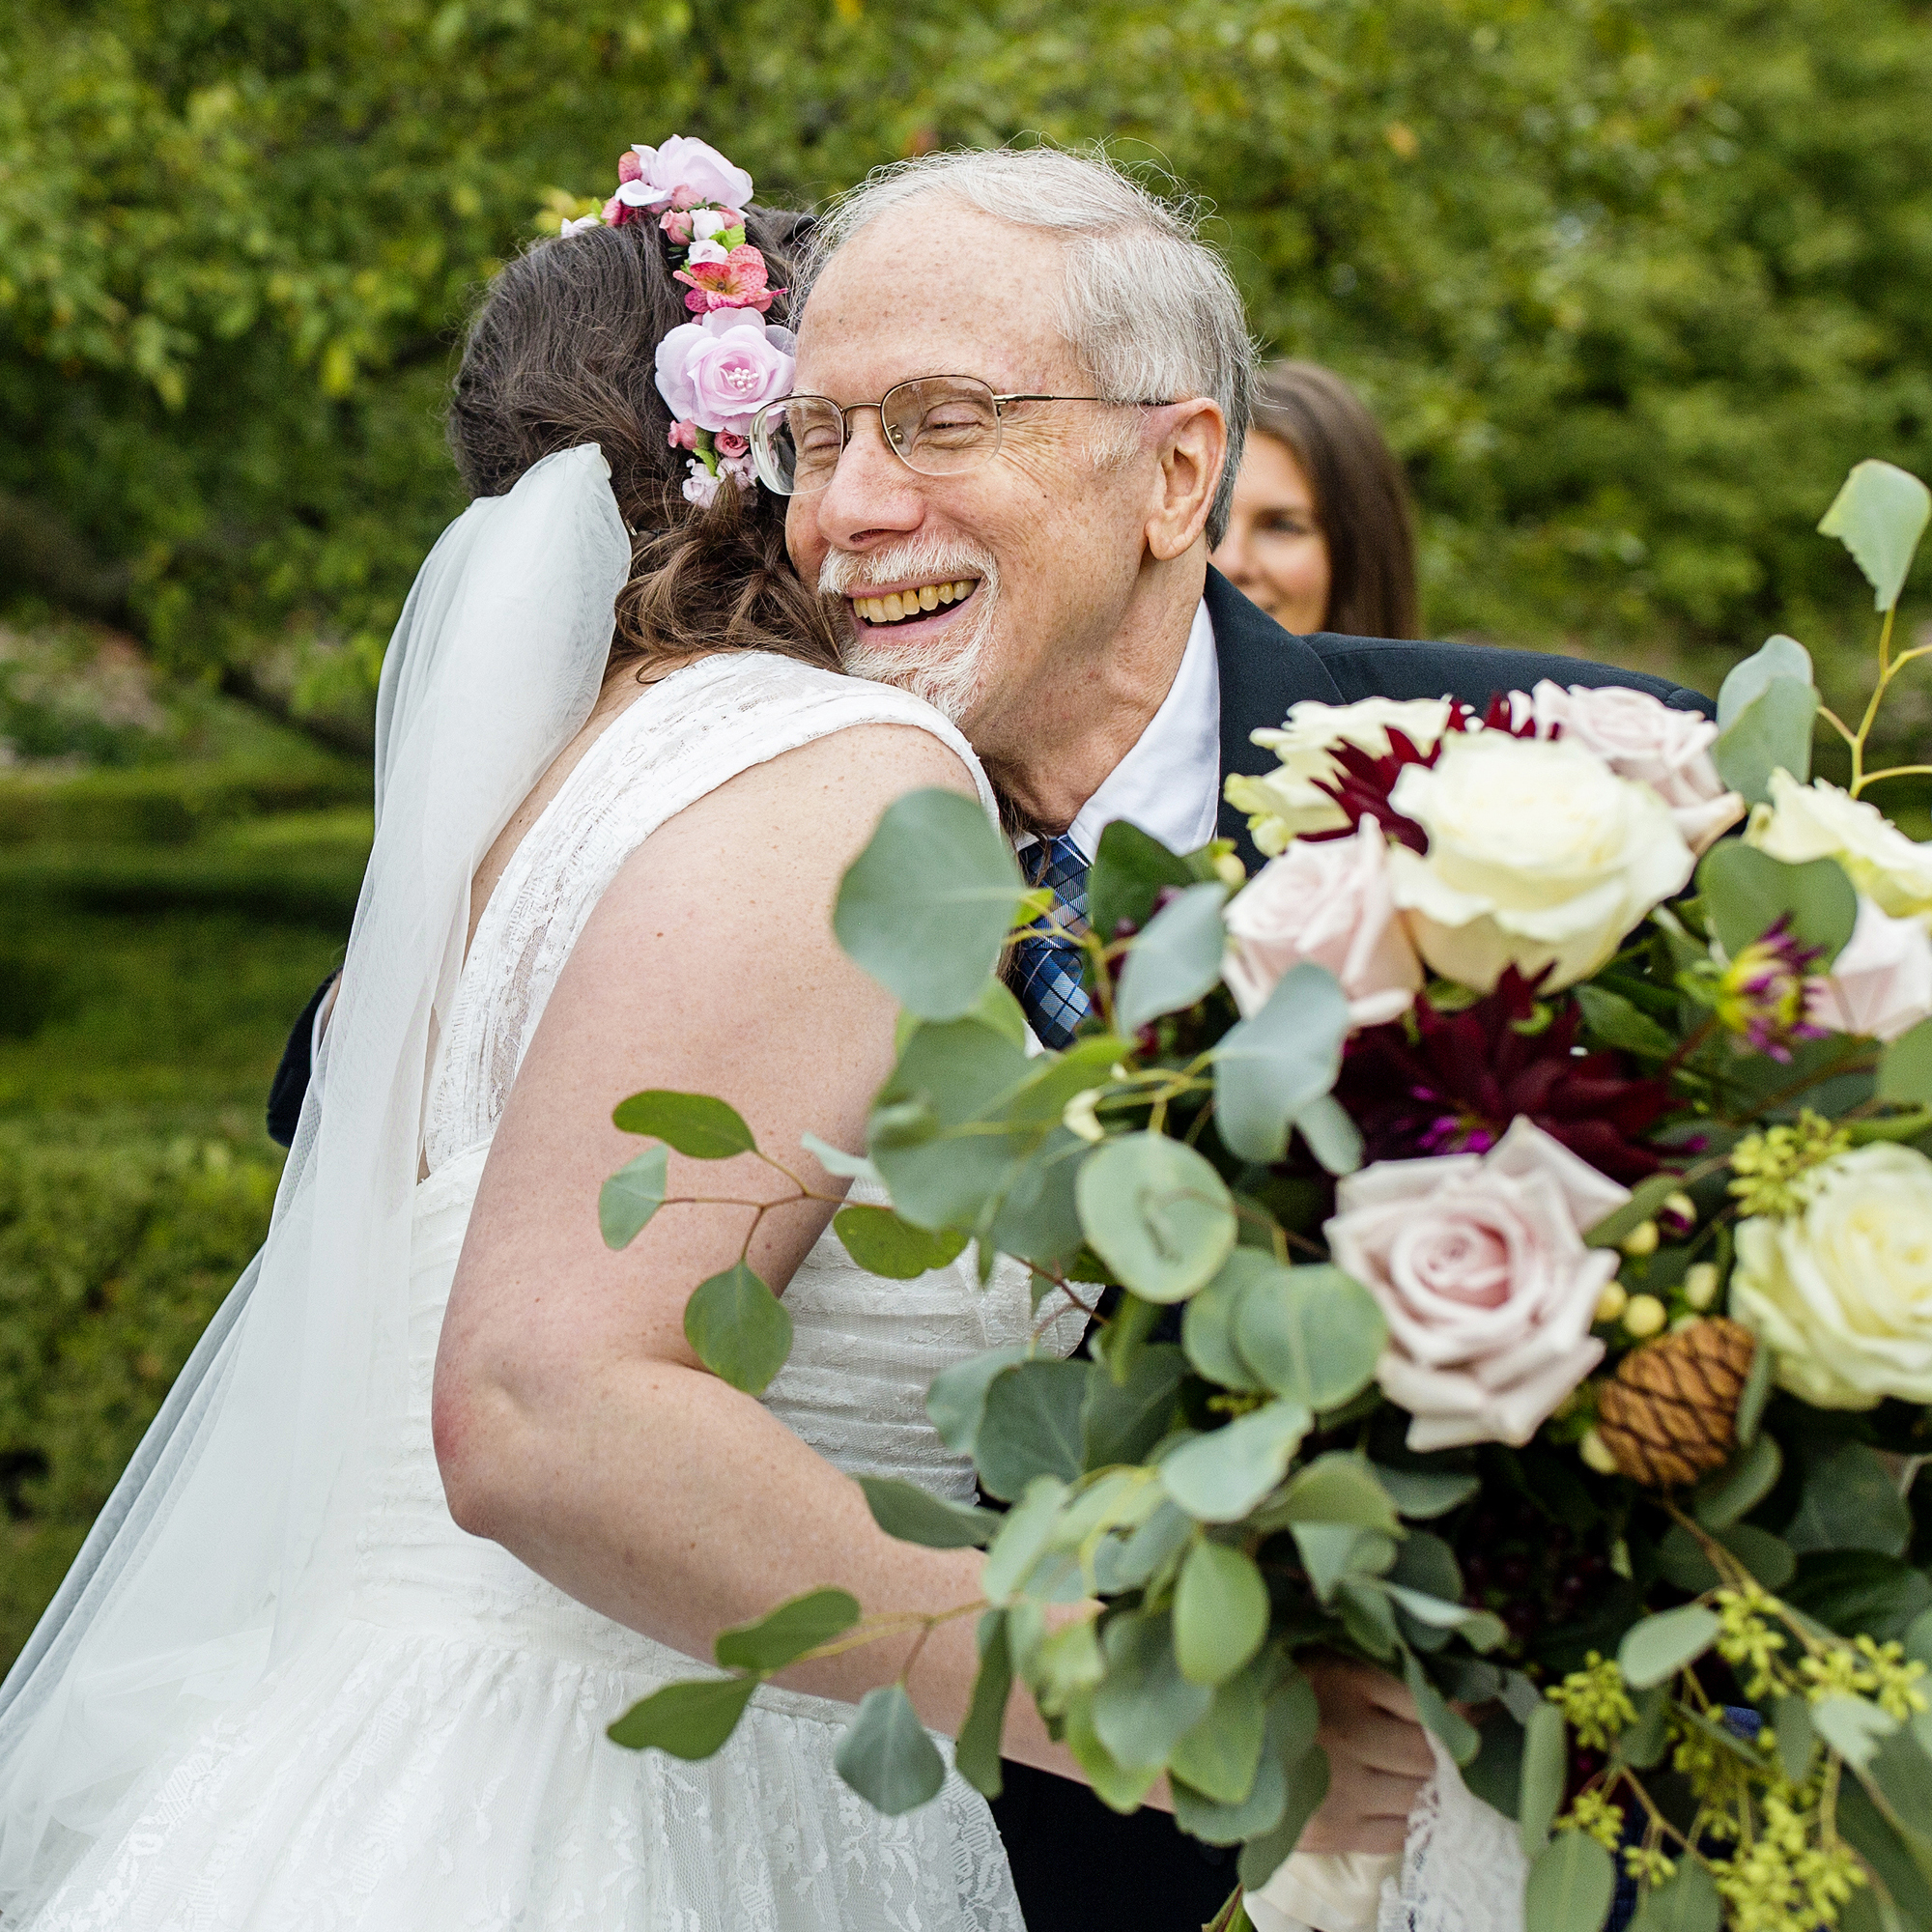 Seriously_Sabrina_Photography_Lisle_Illinois_Morton_Arboretum_Wedding_Day_Gowen79.jpg